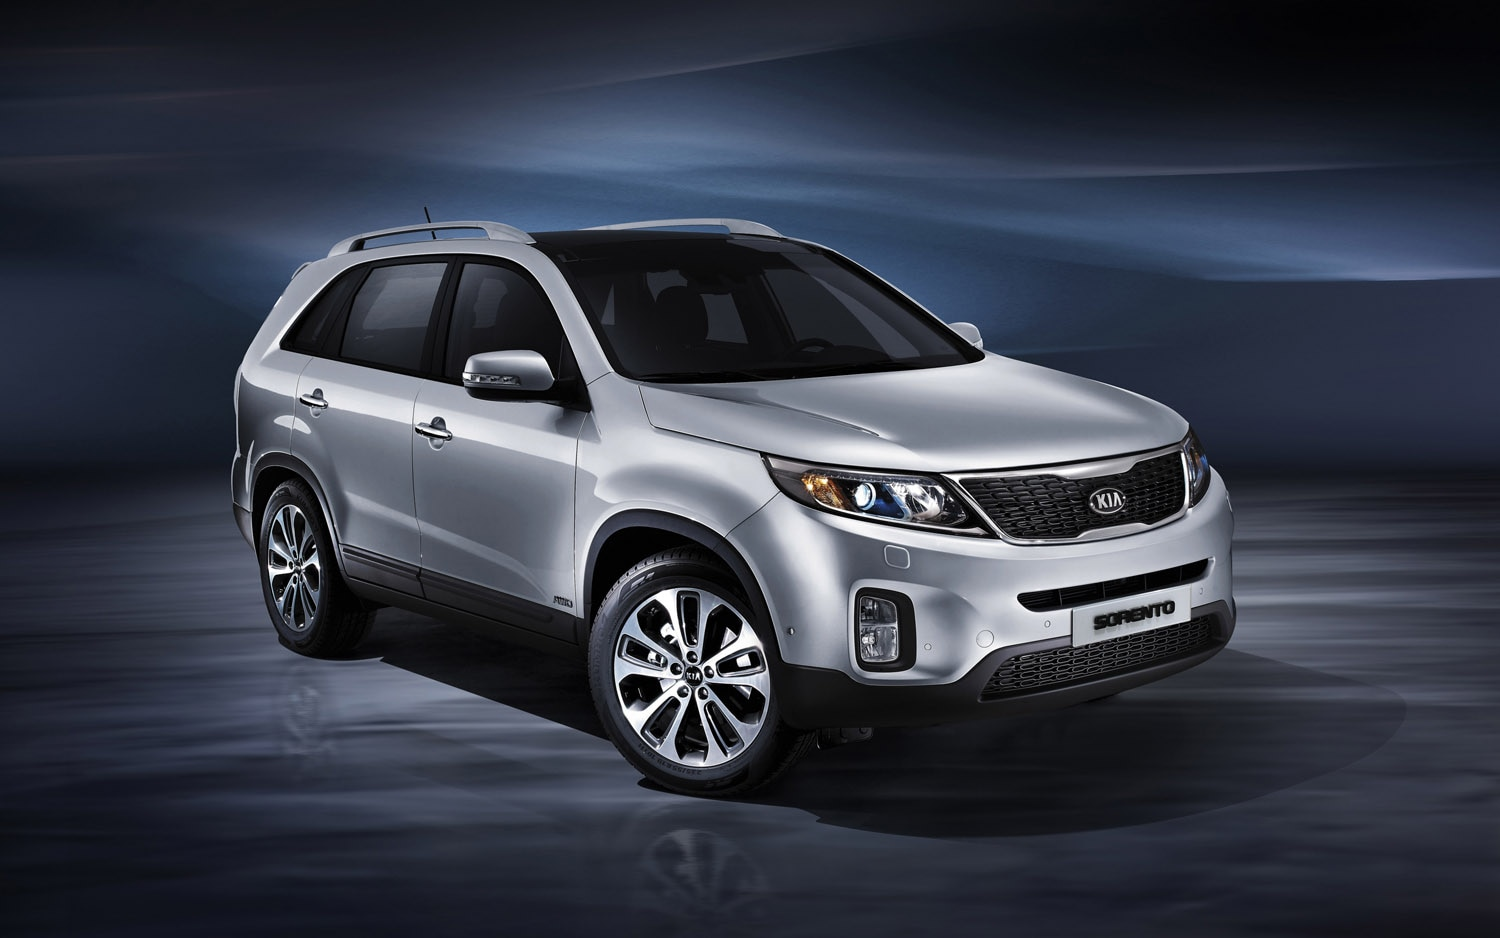 new car launches europe 2014Facelifted 2013 Kia Sorento Unveiled In Europe US Launch Timing